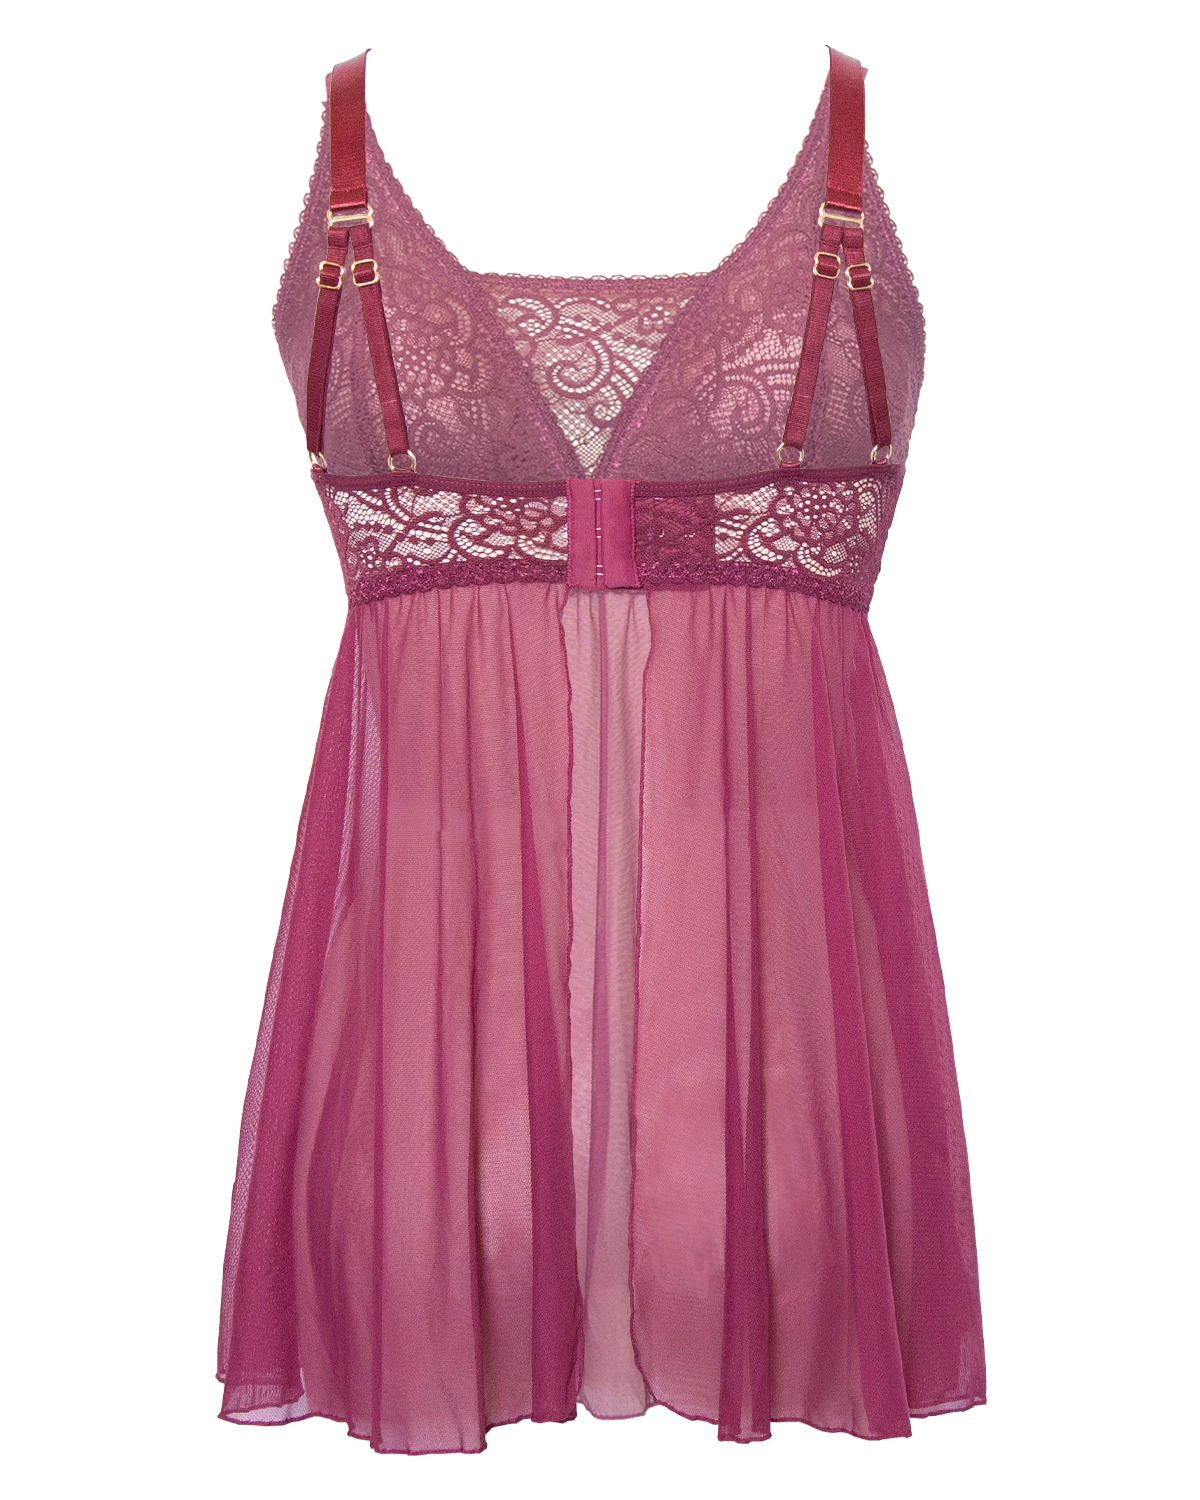 Wine, pocketed soft stretch lace and flowy mesh babydoll dress with back closure, adjustable straps and open back.